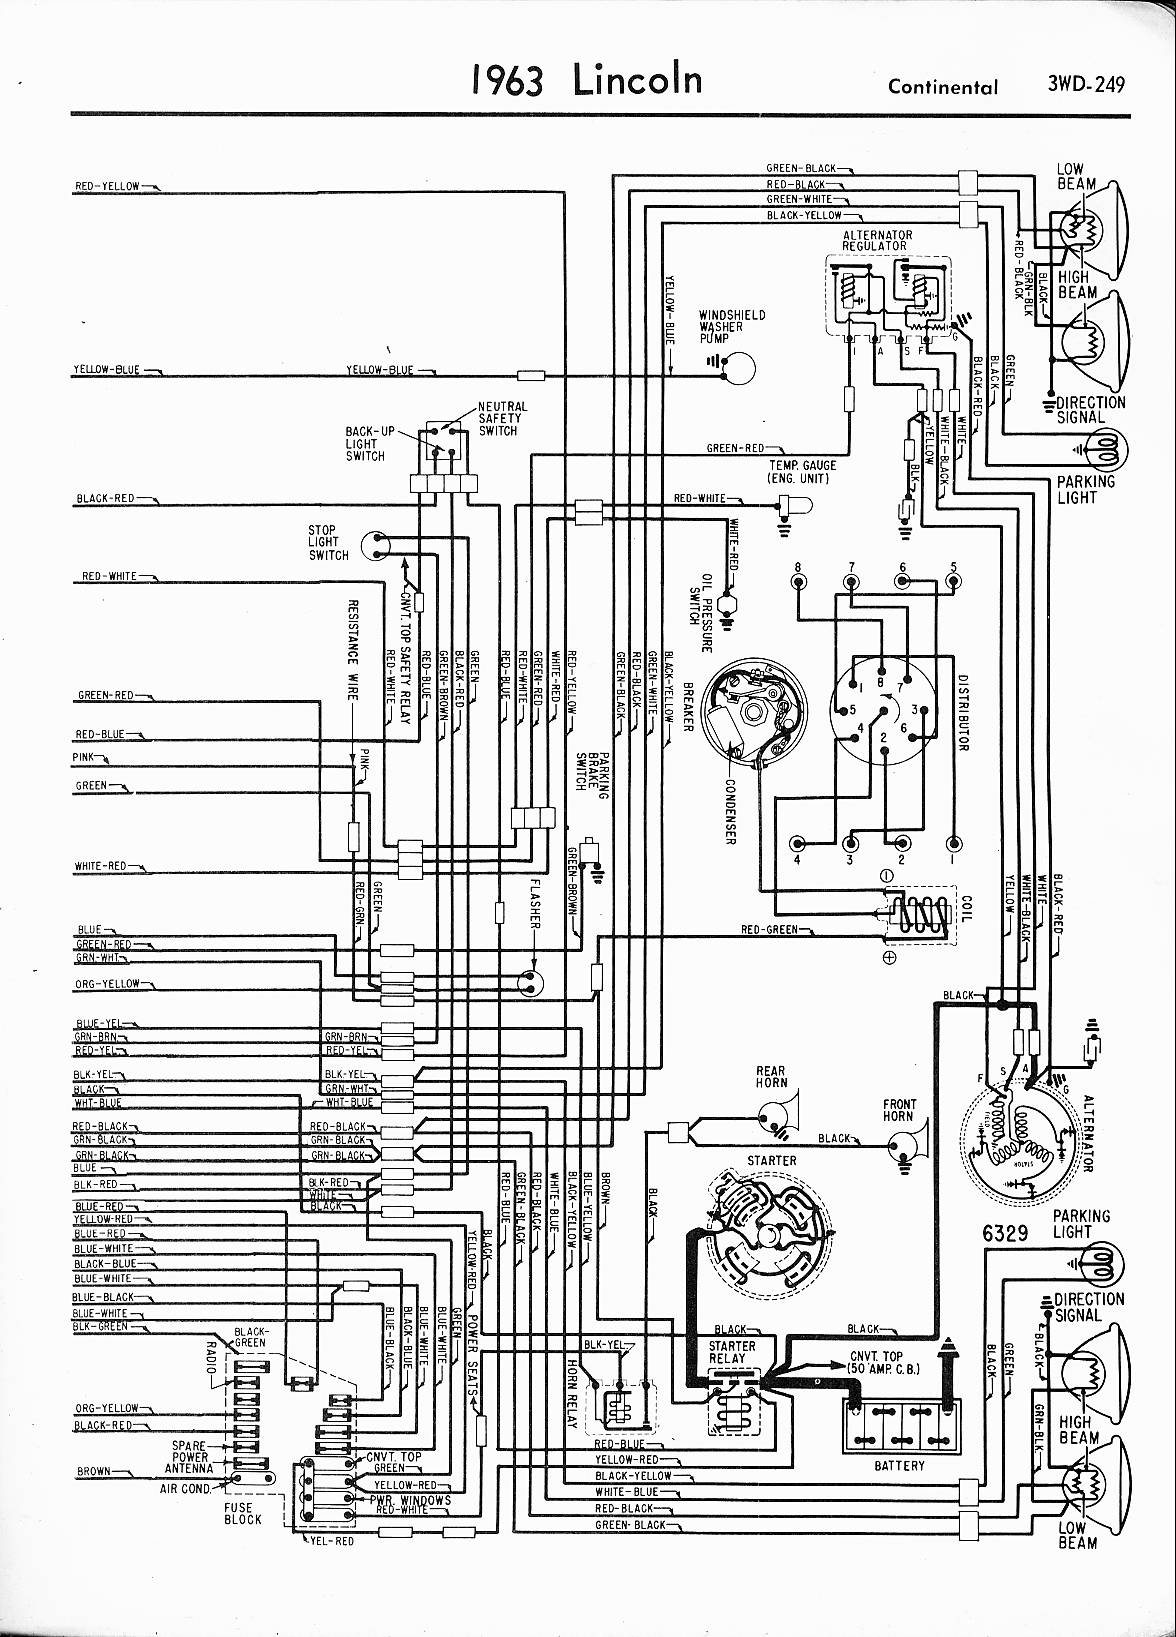 hight resolution of 1966 lincoln wiring diagram wiring diagram detailed mcneilus wiring diagrams lincoln continental convertible top wiring diagram